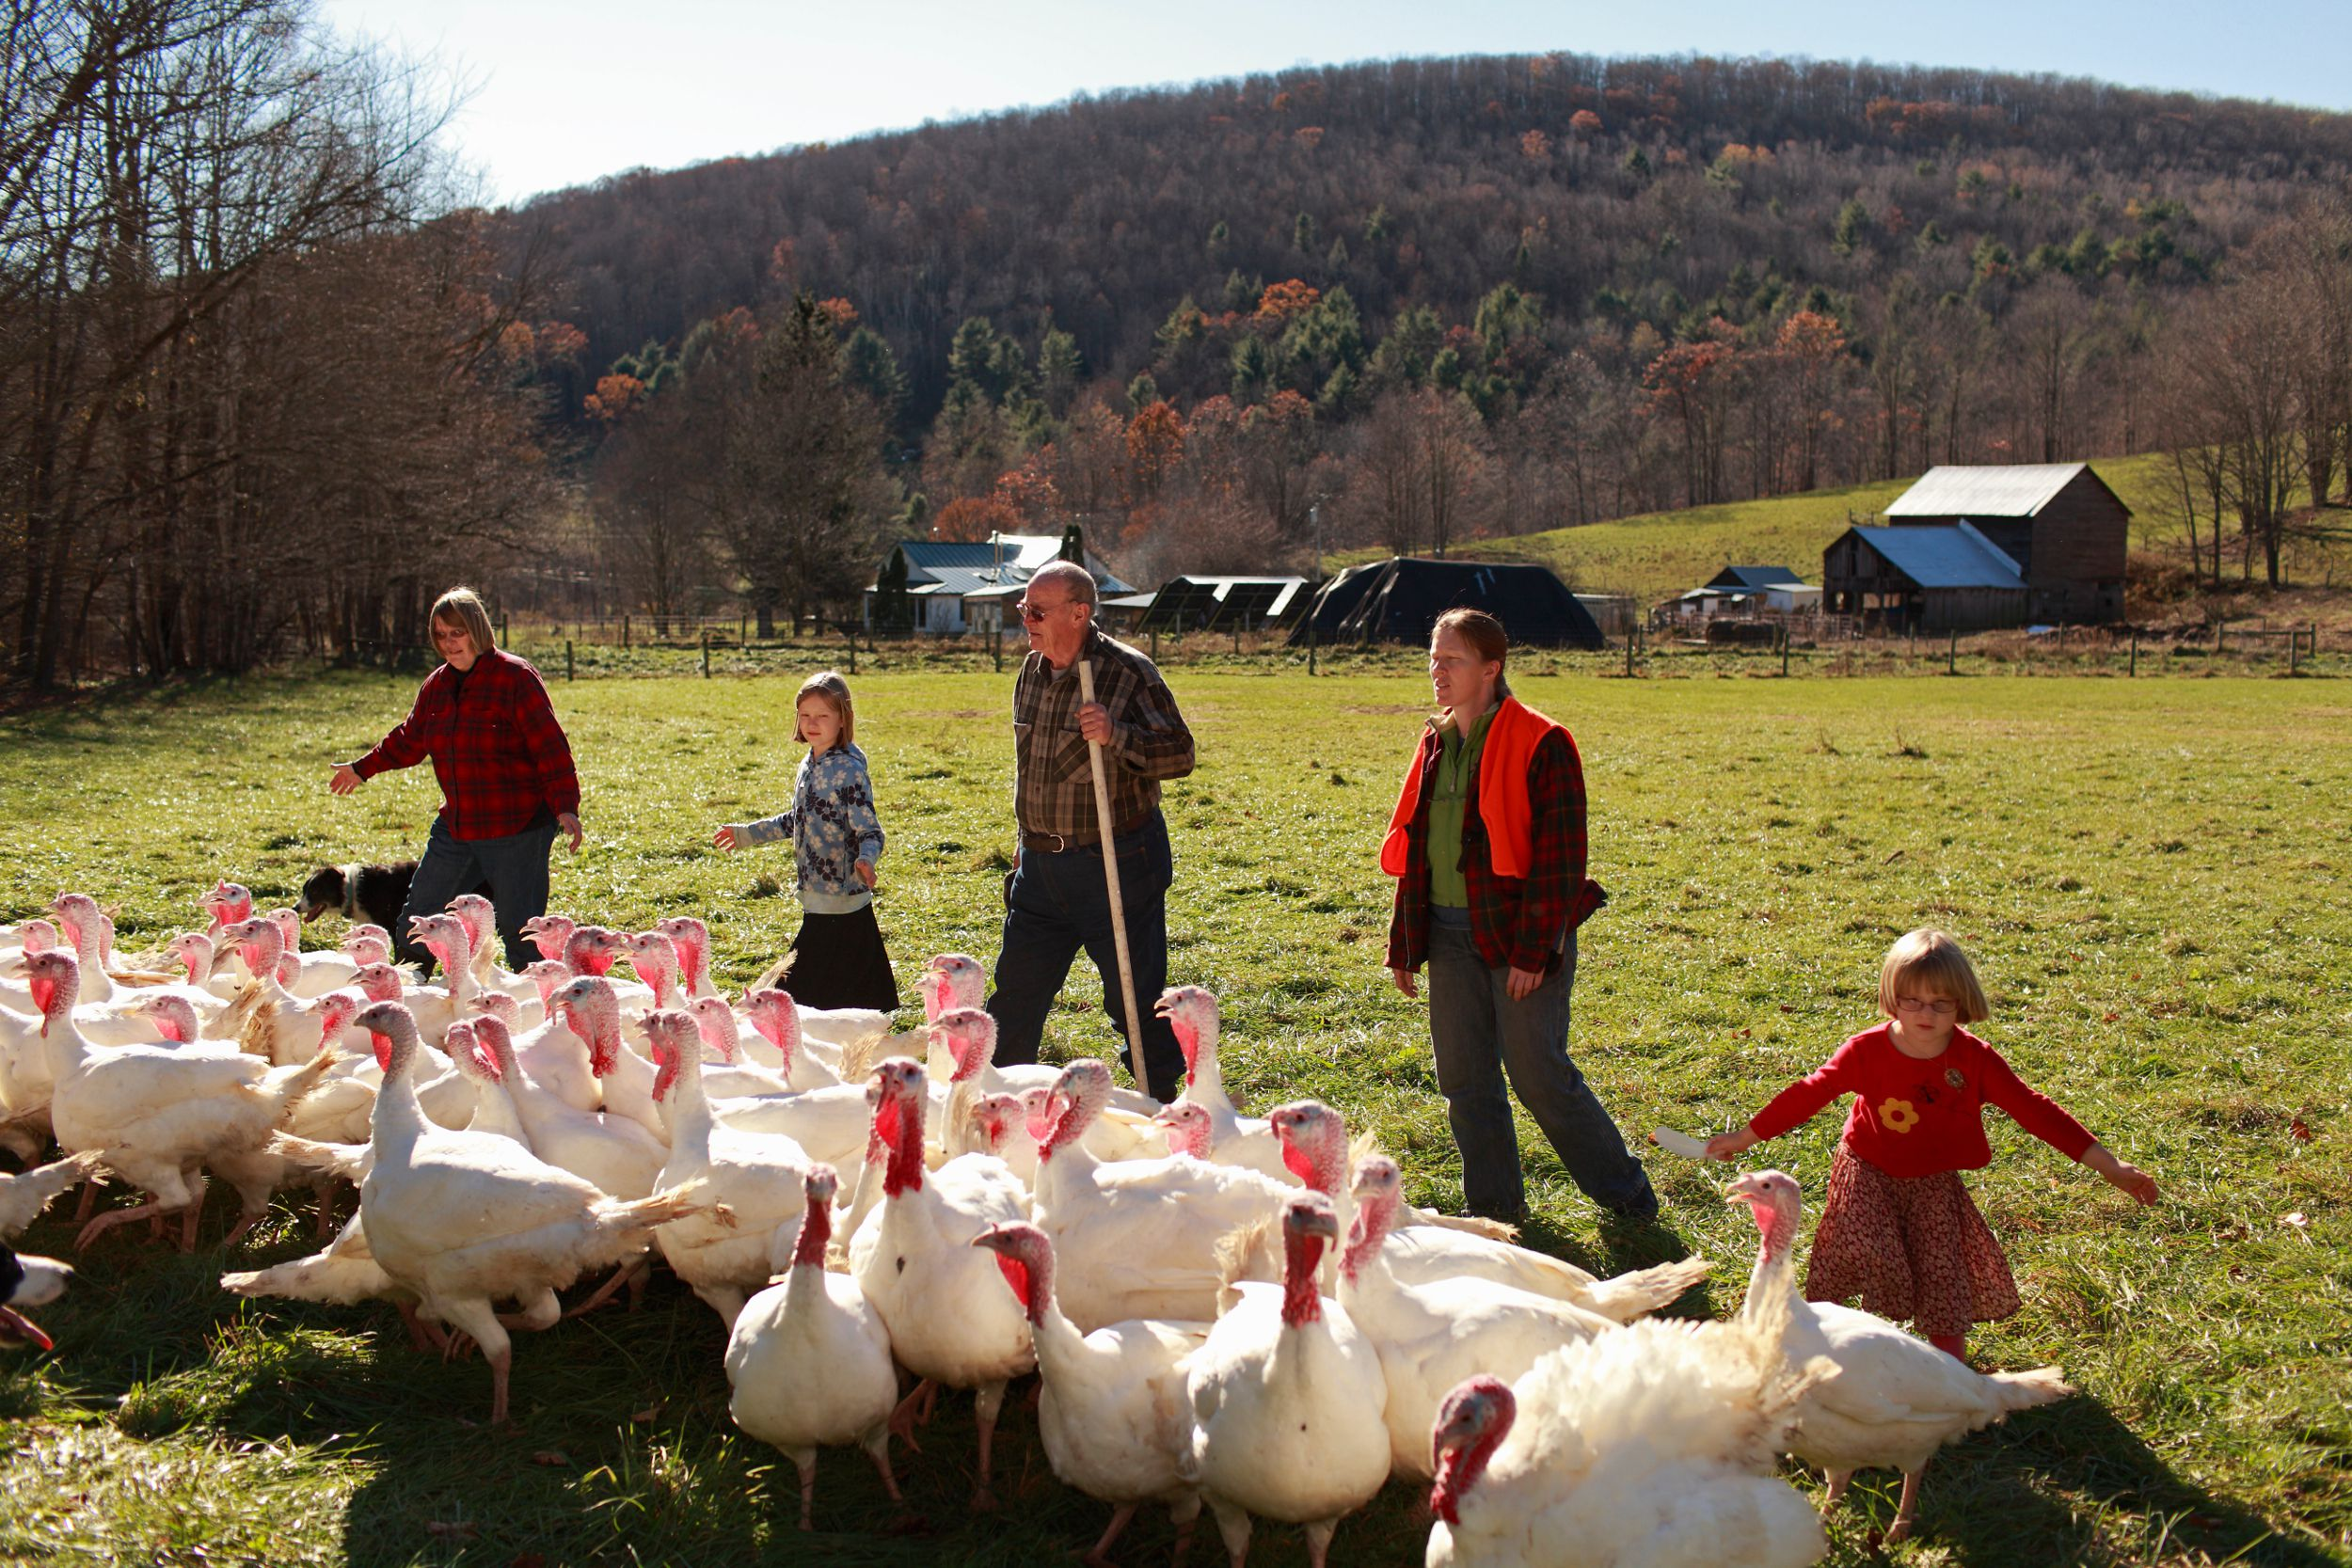 Farmer and his family herding his flock of organically raised turkeys